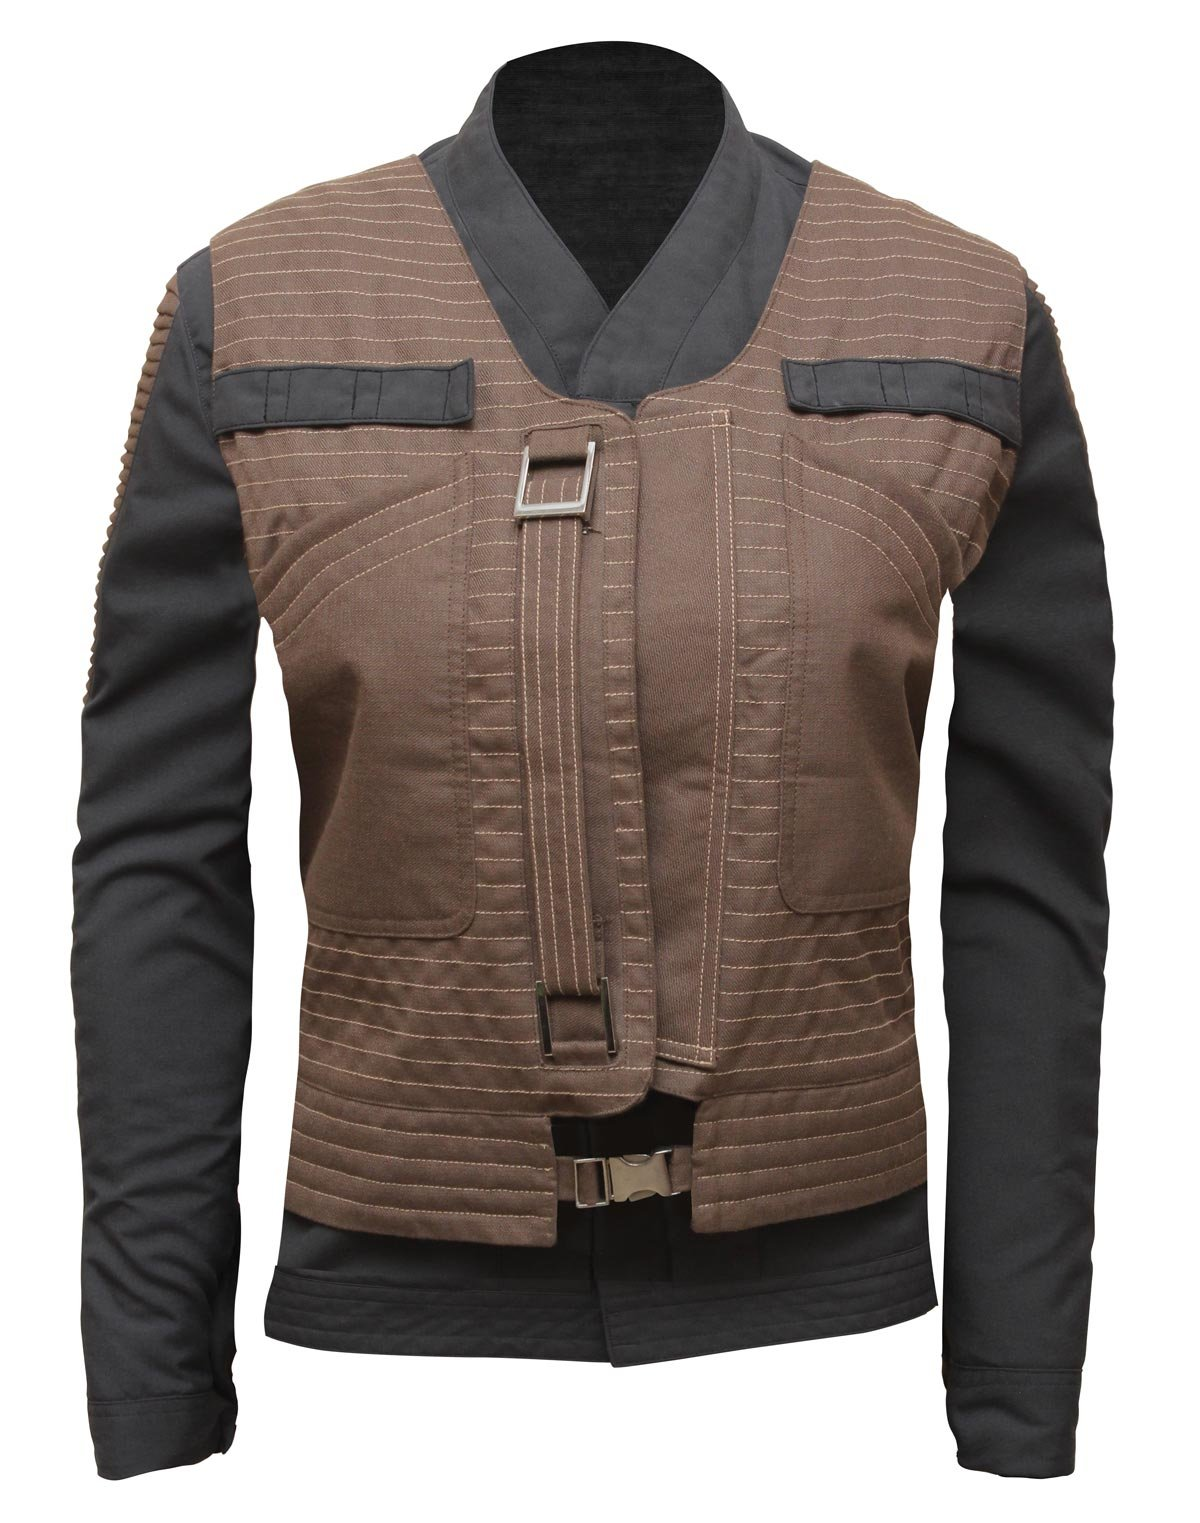 Star Wars Rogue One Jyn Erso Womens Jacket with Vest XL